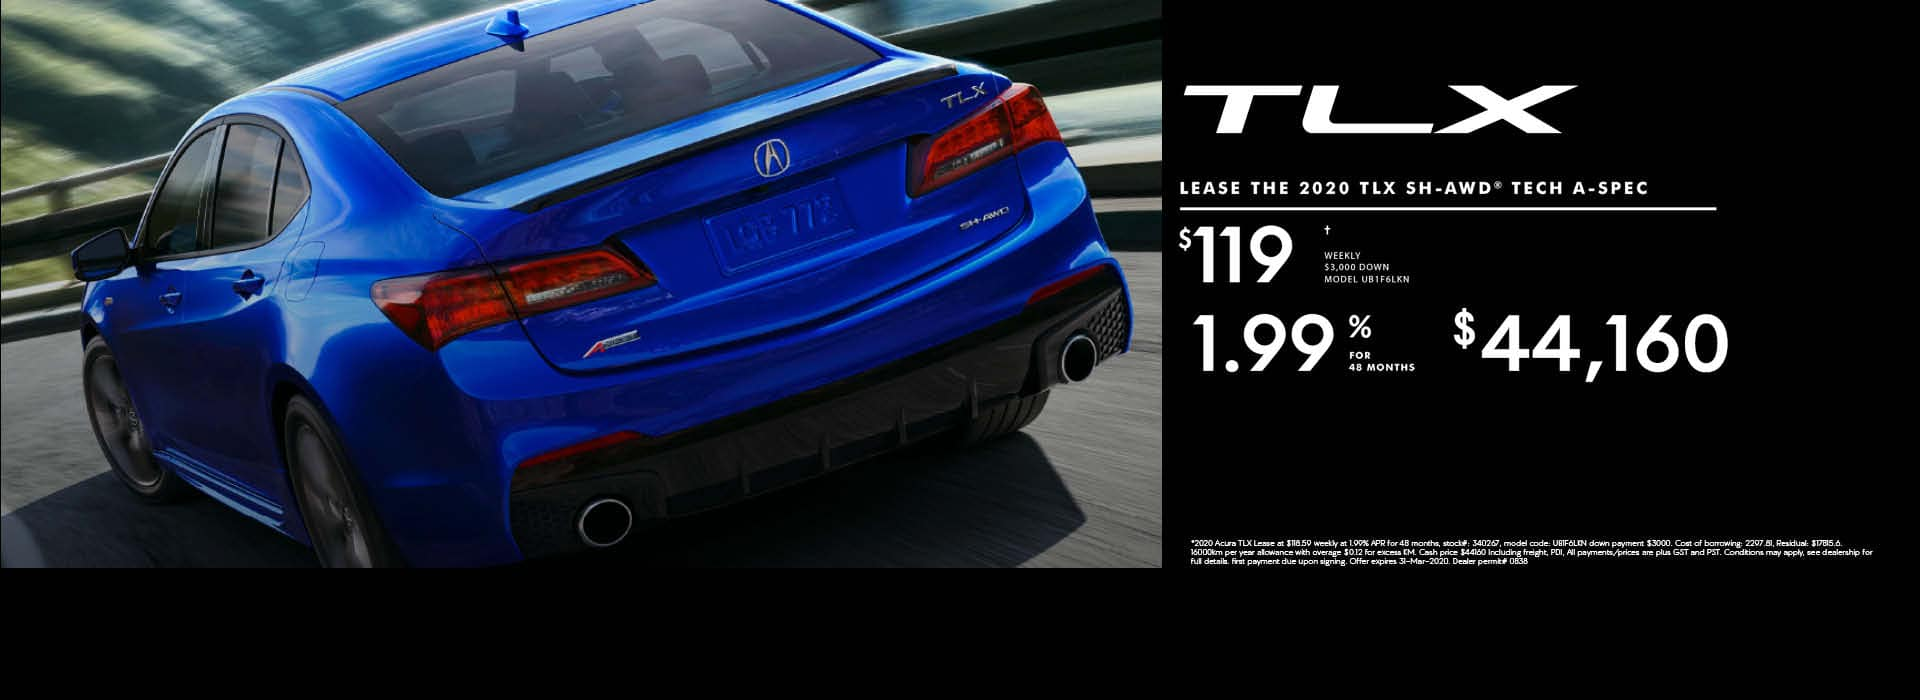 2020+TLX__Desktop_Home_Page_Banner_Sept20203